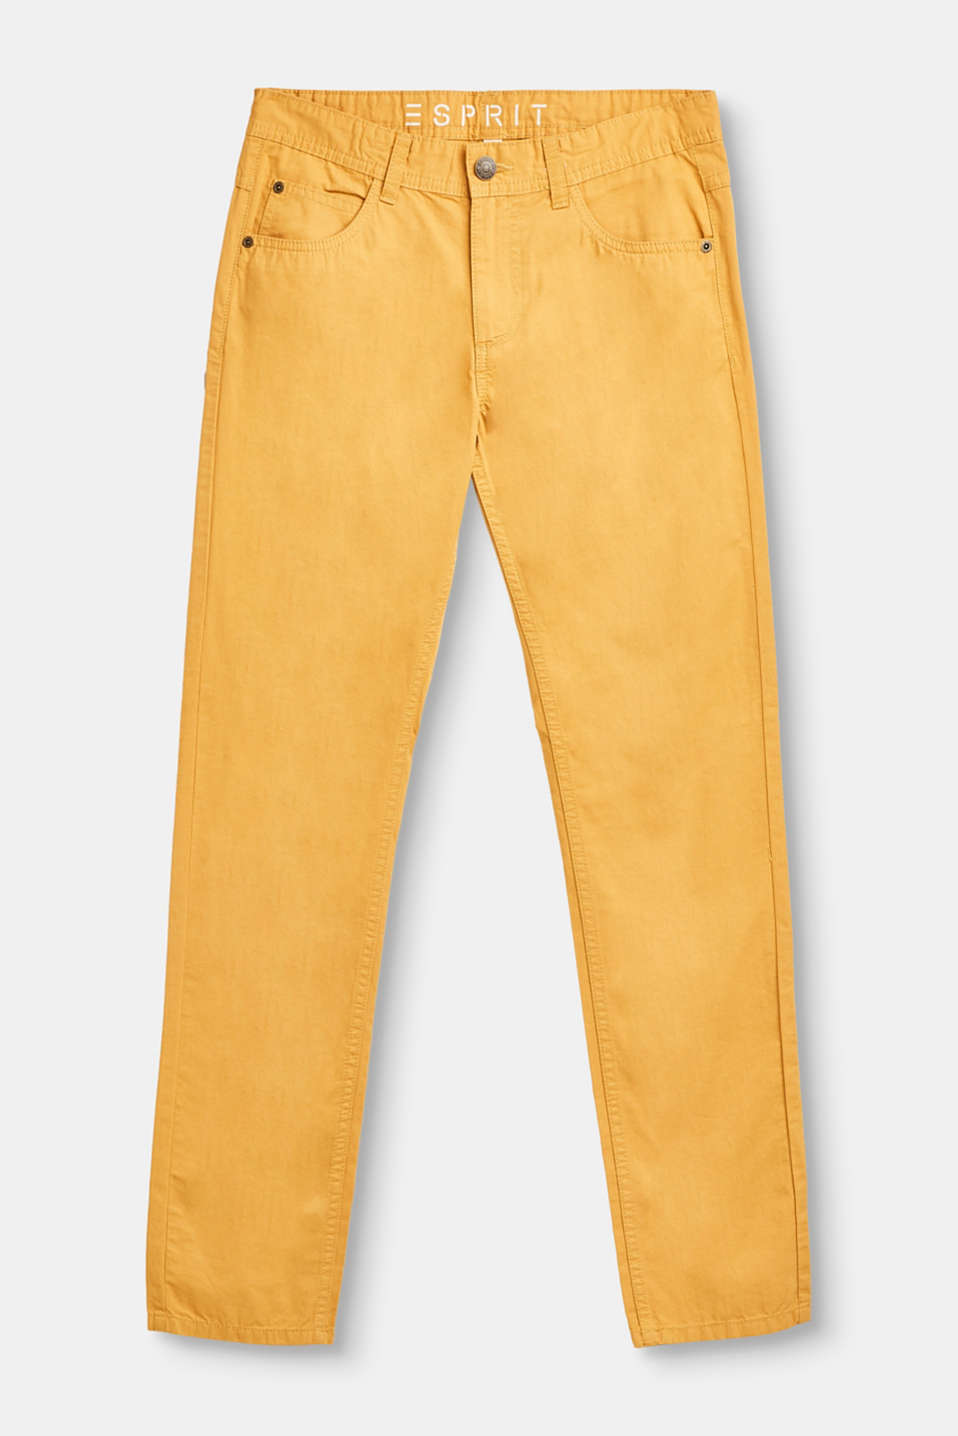 Esprit - Casual cotton chinos with mock piped pockets